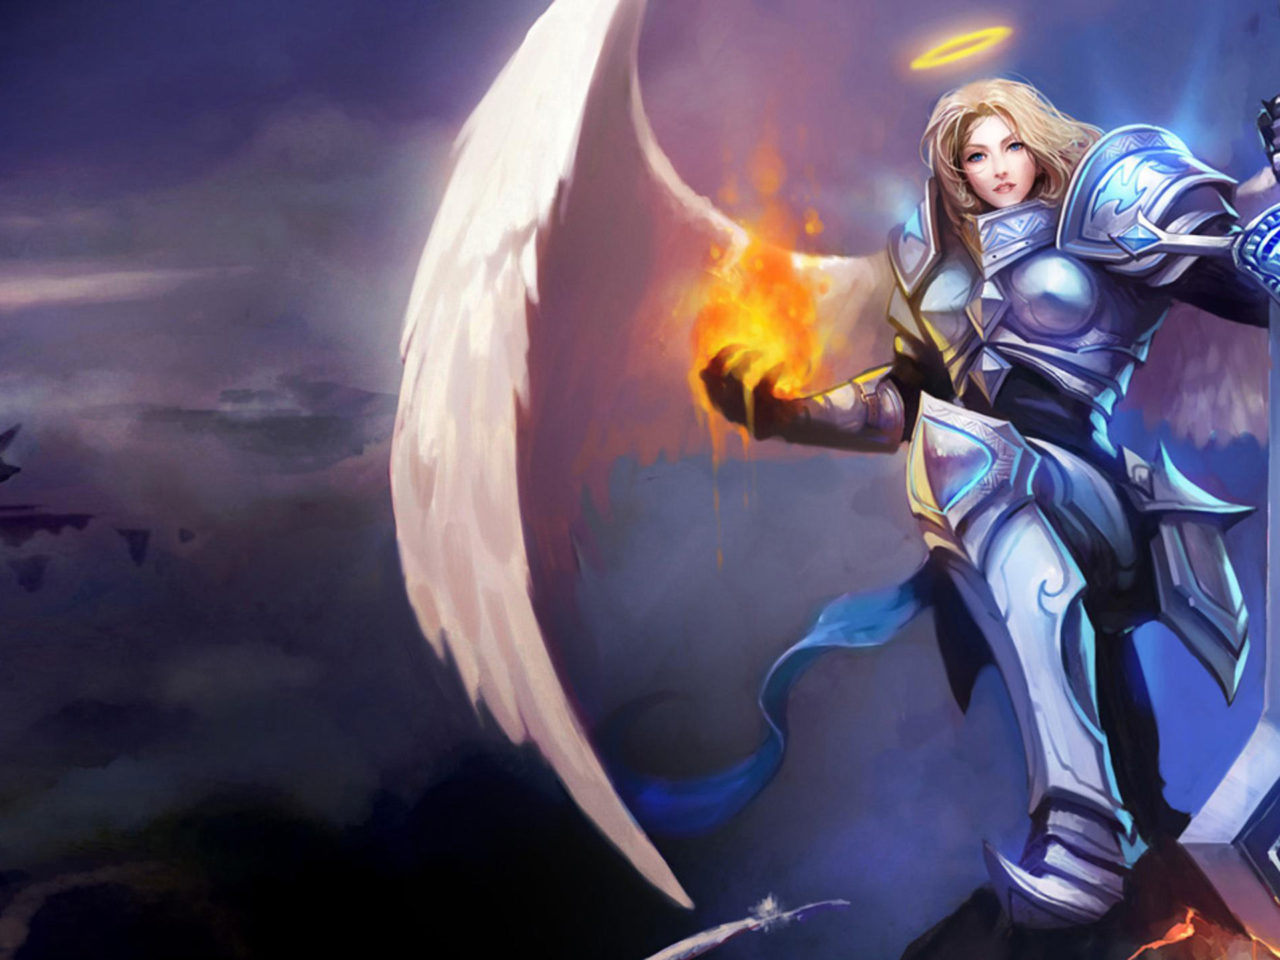 Girl Boss Wallpaper Iphone Kayle Angel Magic Heroes League Of Legends Desktop Hd